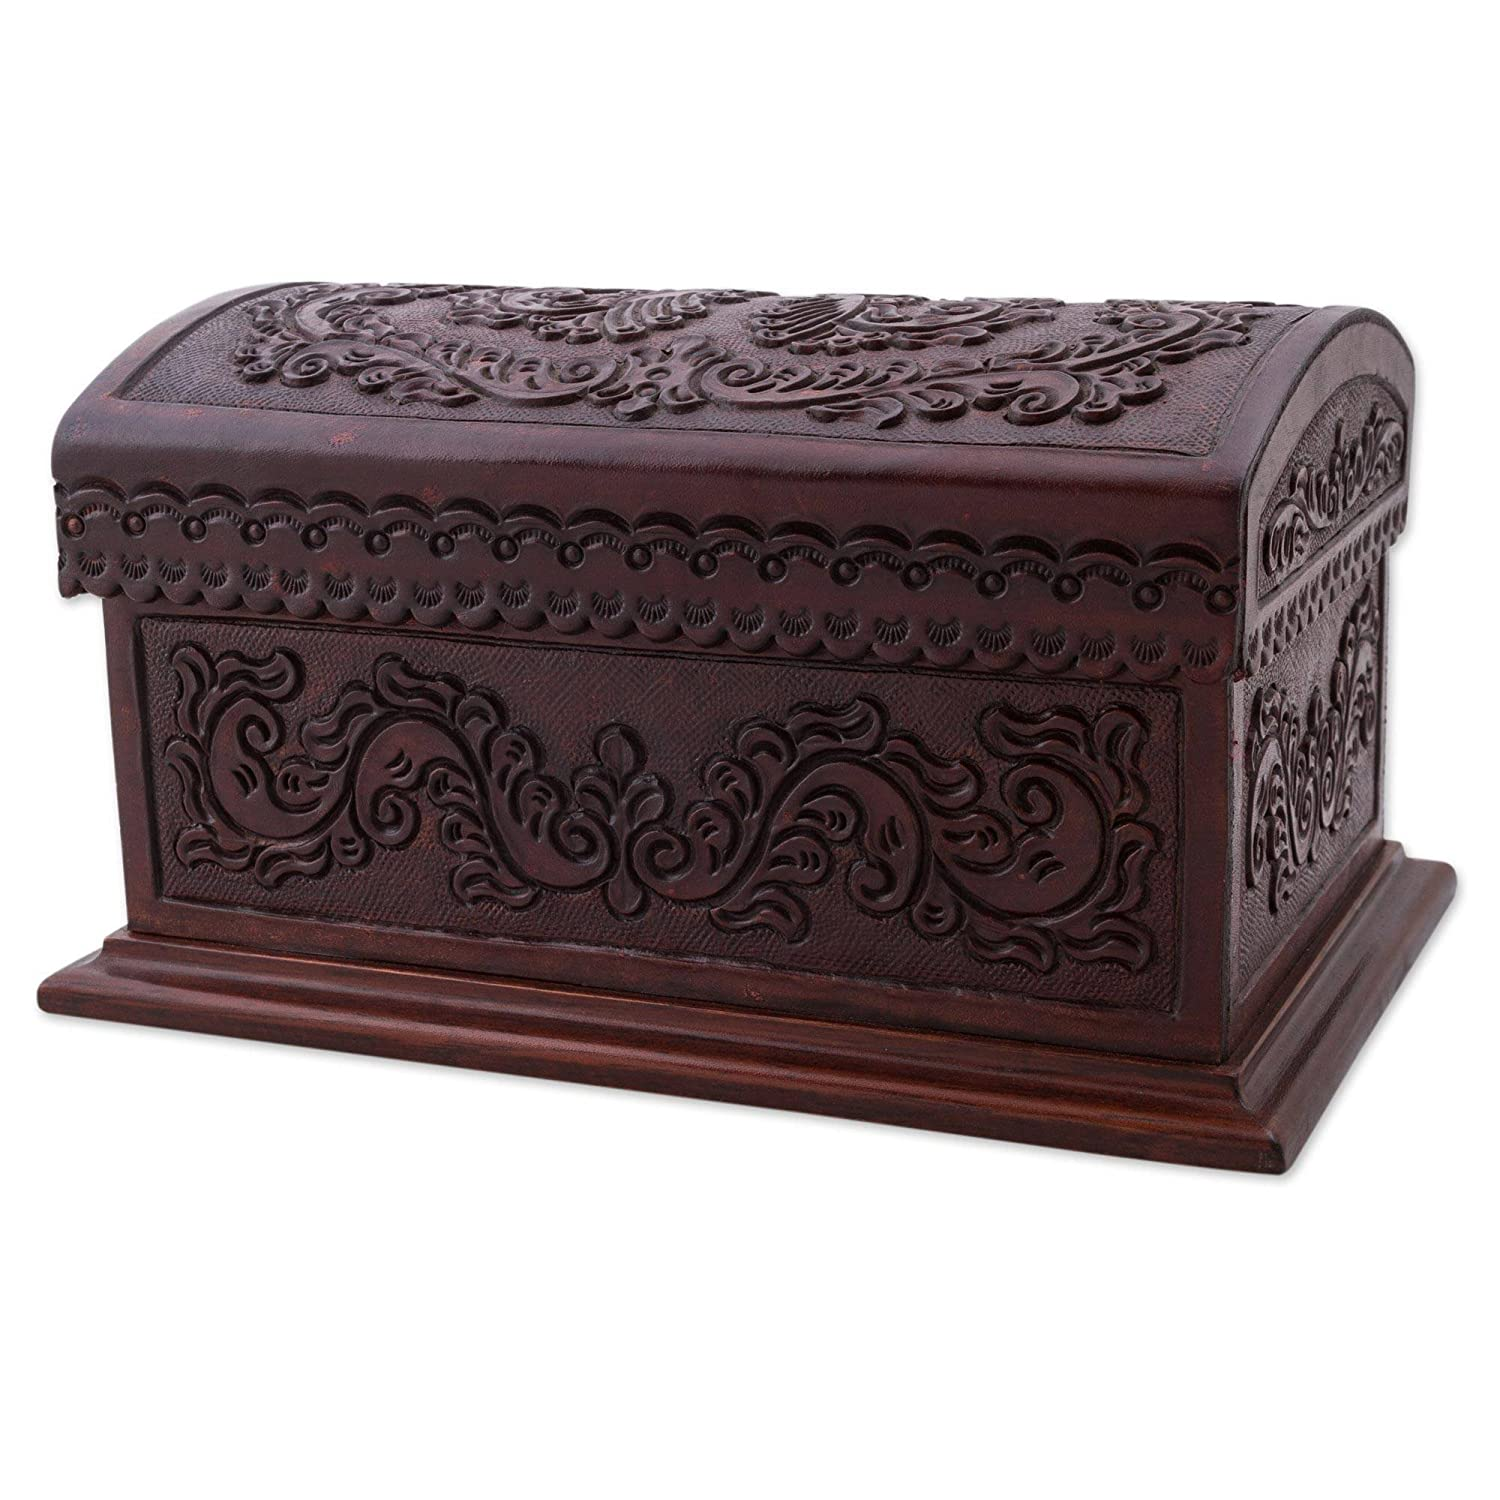 Novica 273210 Classic Inspiration Leather Wood Chest